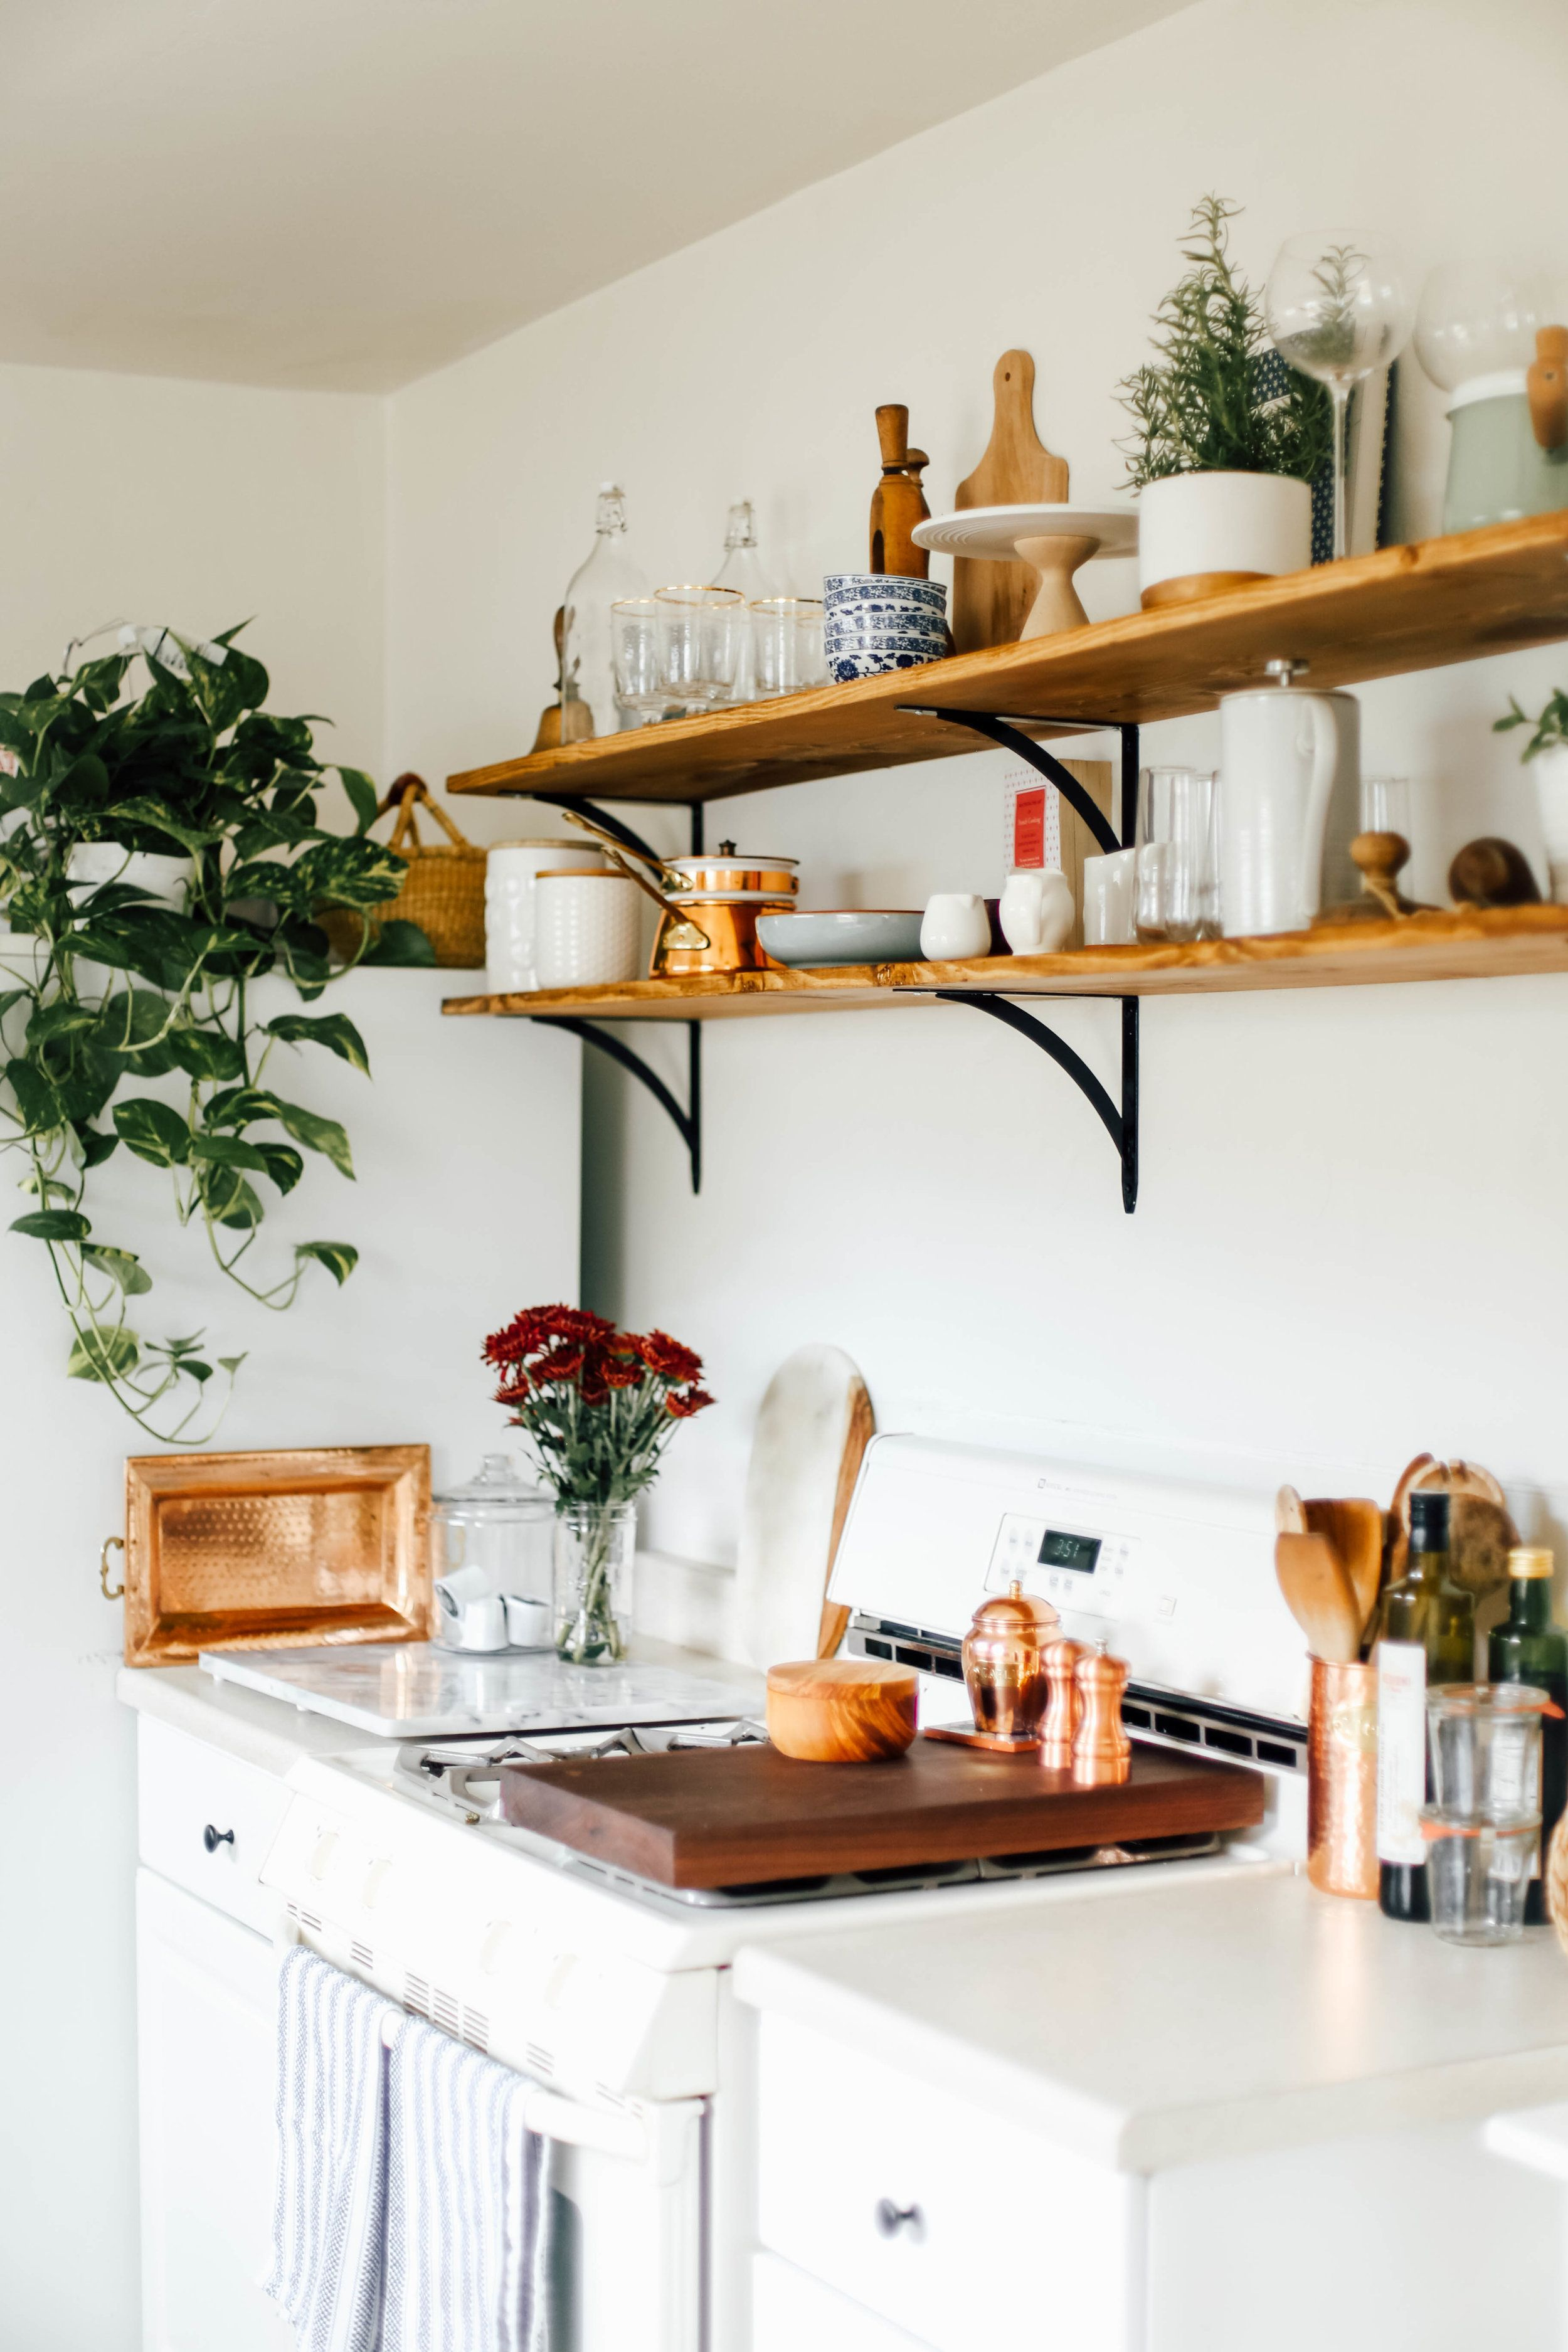 Kueche Dachgeschosswohnung My Rental Kitchen California Farmhouse Makeover